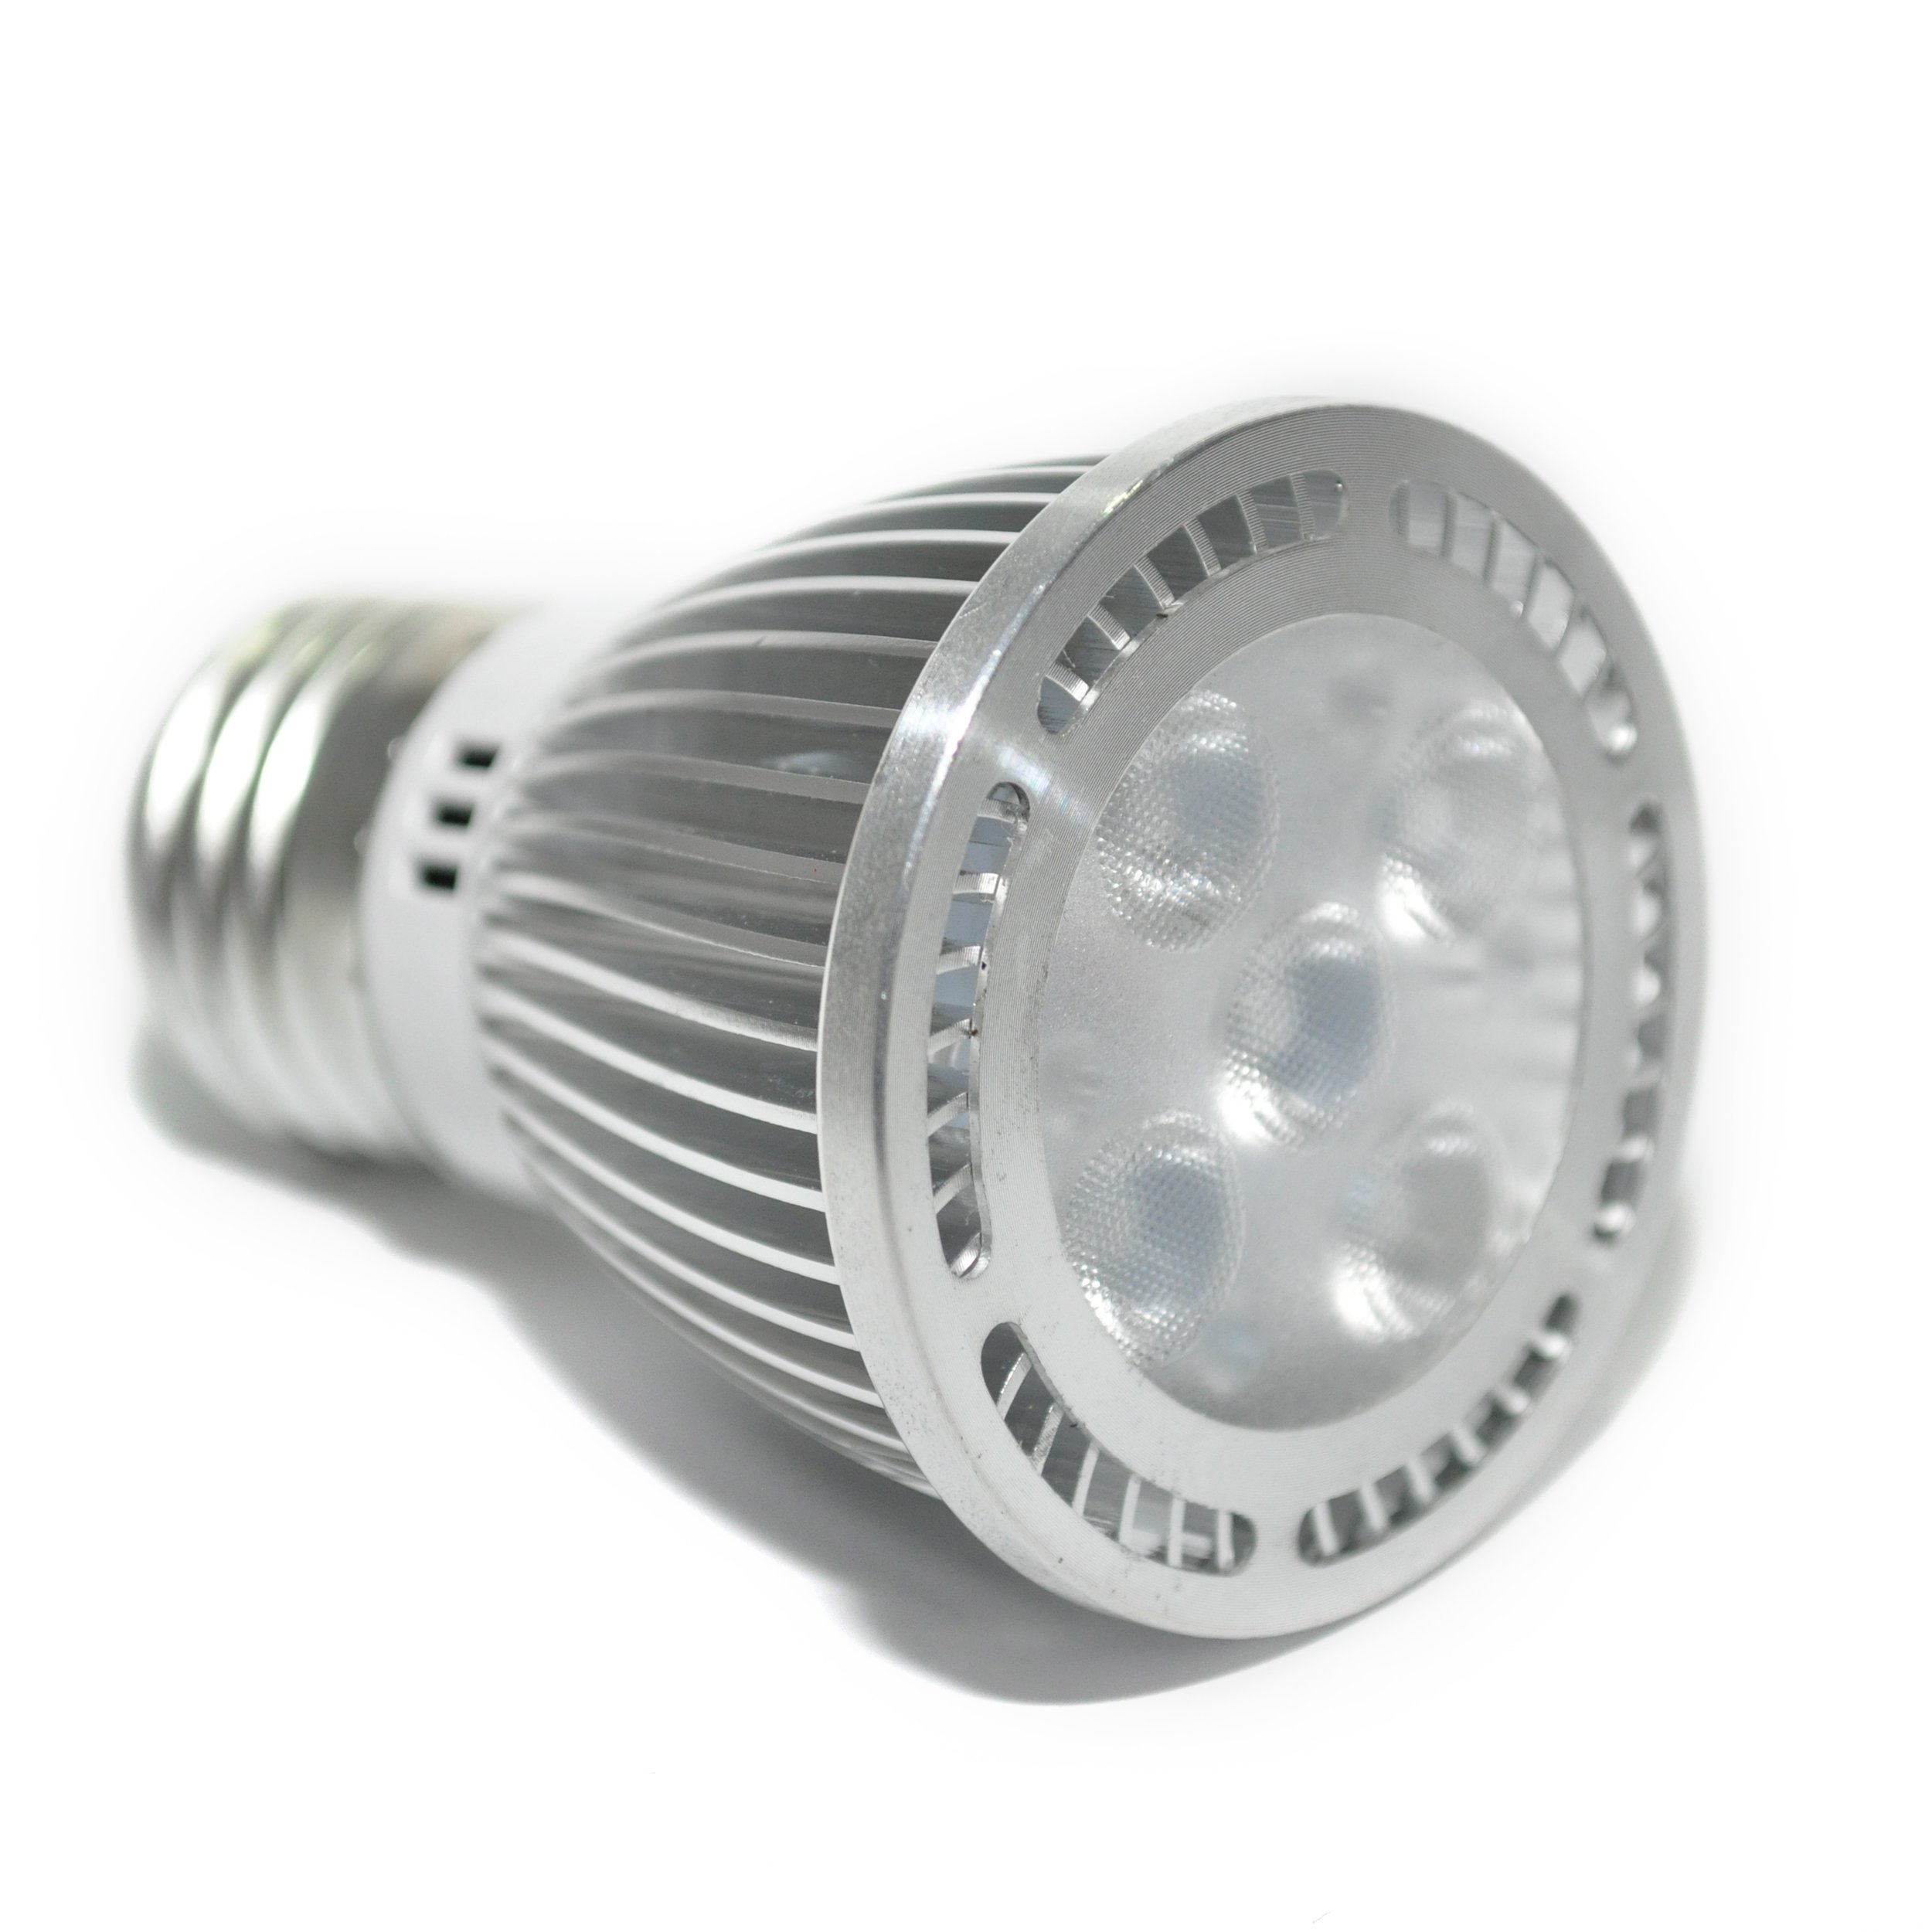 Premium 5W LED GROW LIGHT BULB | HIGH YIELDS | Grow Lights for Indoor Plants, Grow Lamp for Hydroponics Greenhouse Organic, Plant Lights E27 SOCKET